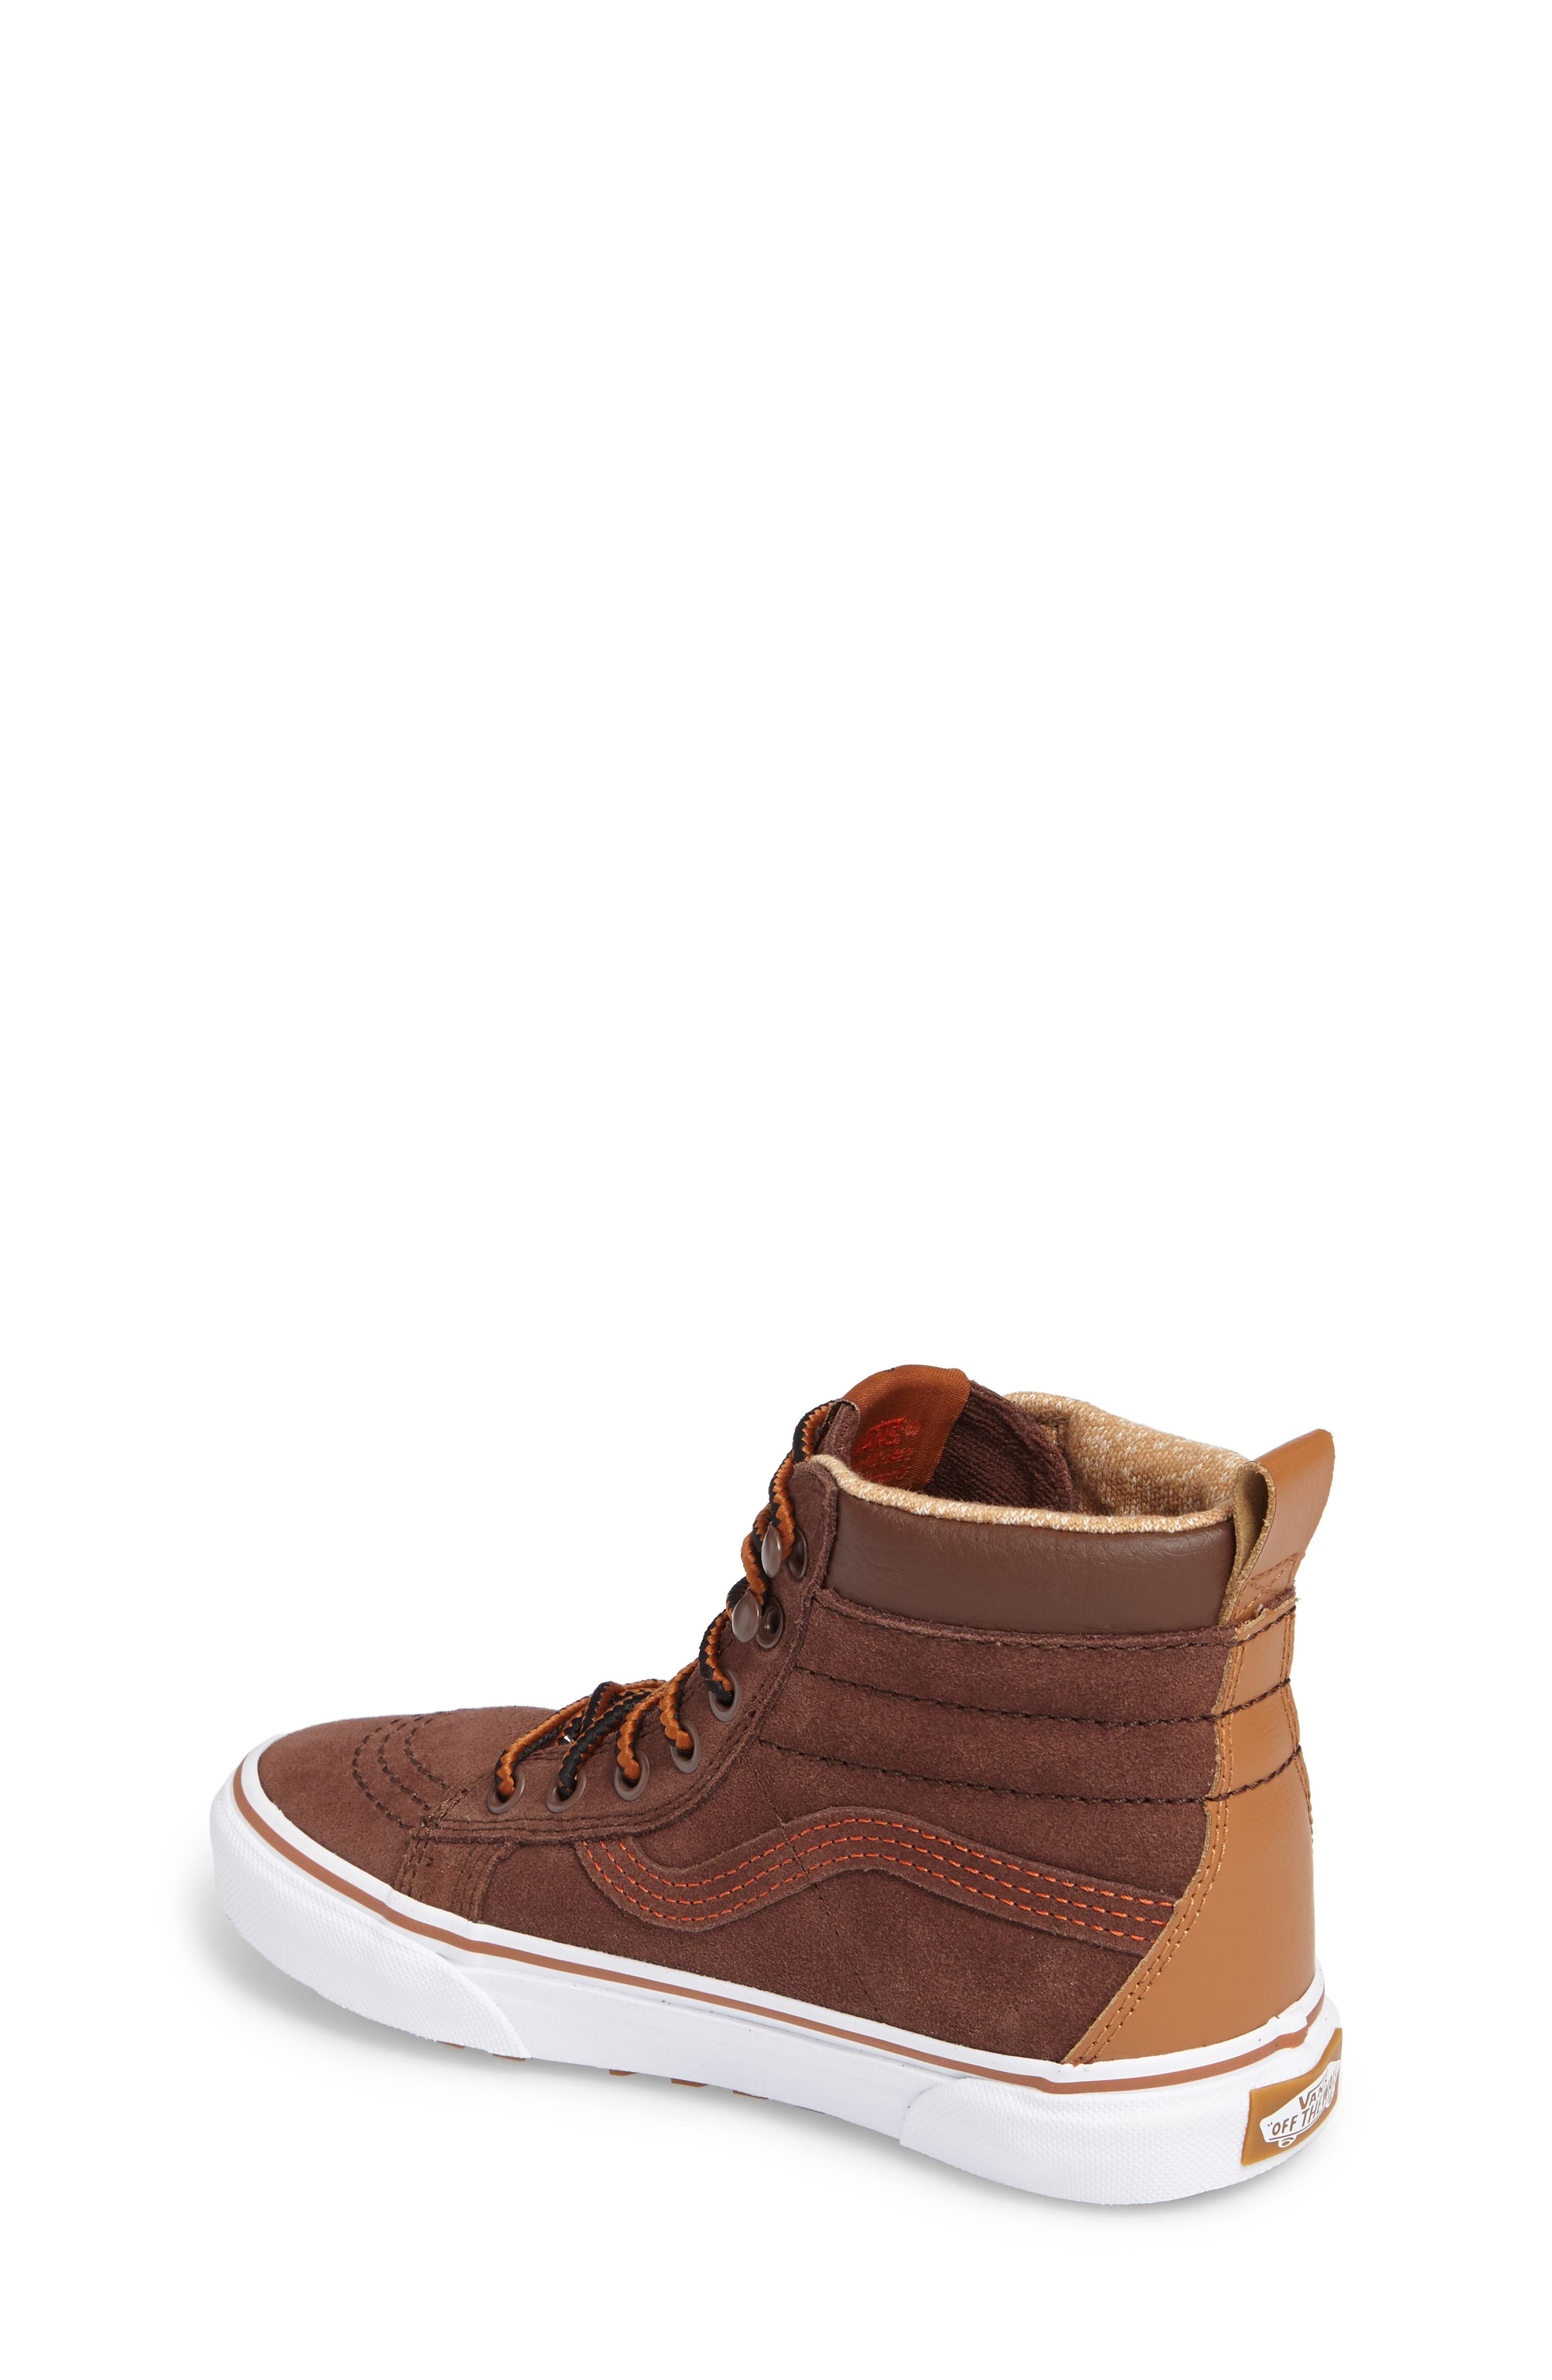 SK8-Hi Sneaker,                             Alternate thumbnail 18, color,